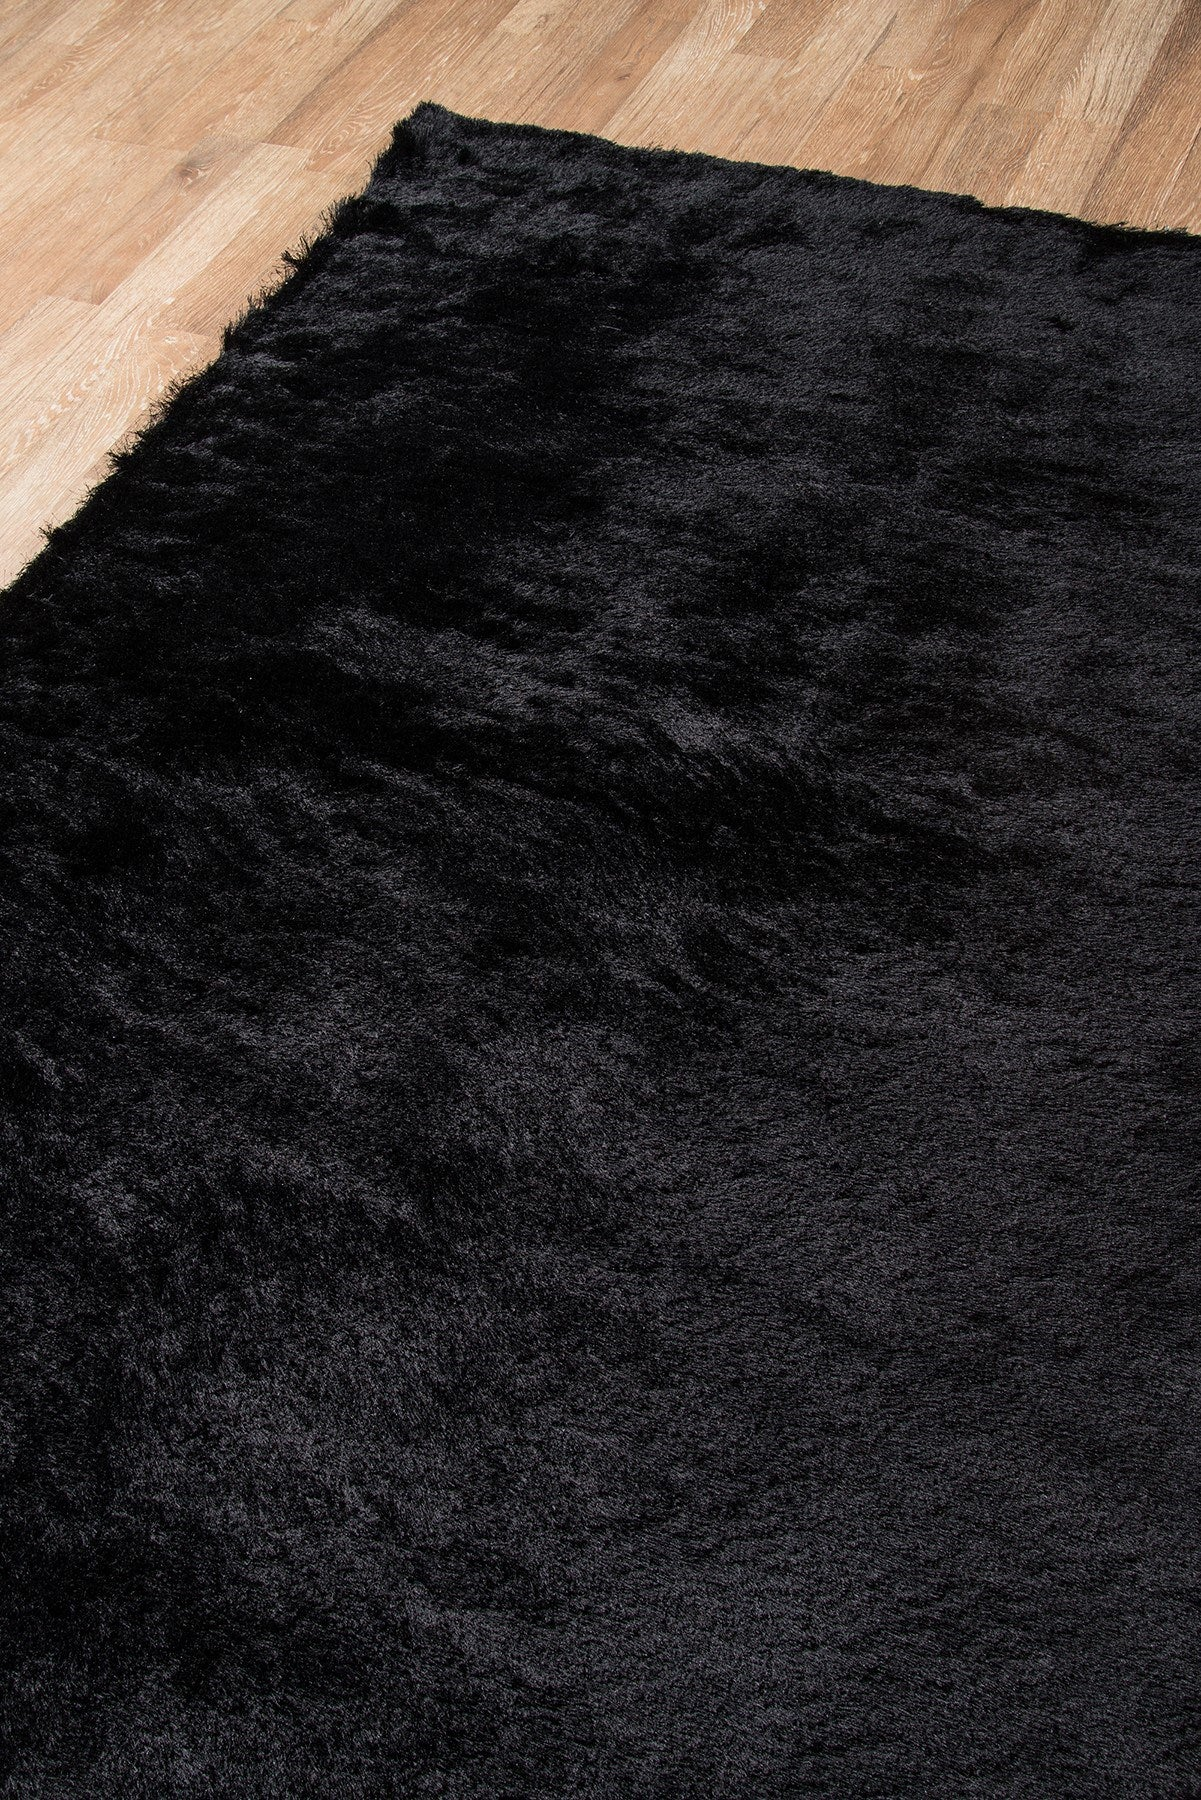 Black Plush Luxurious Mid Century Modern Shag Rug